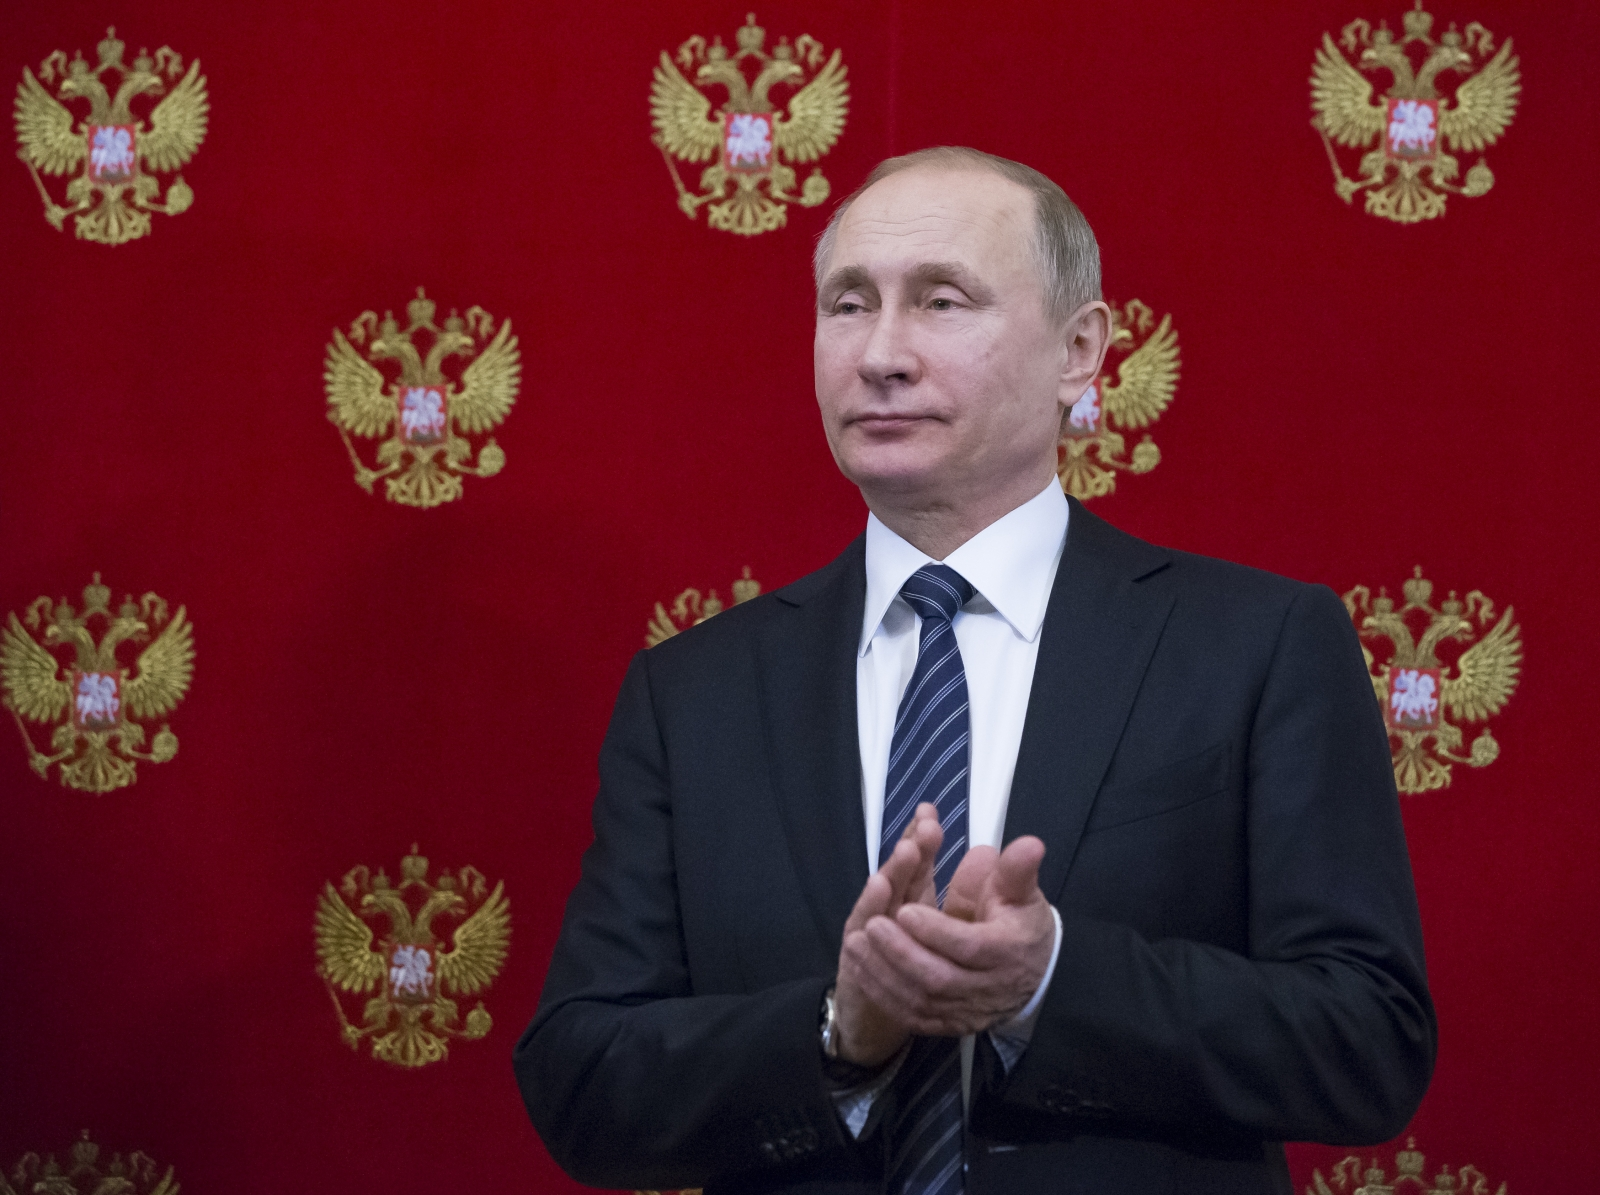 Ukraine crisis Russia veto power